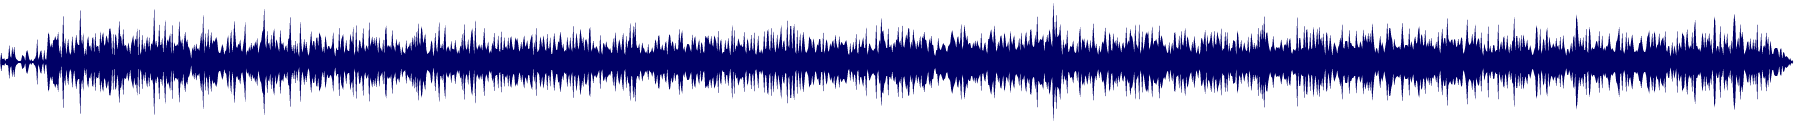 waveform of track #67529